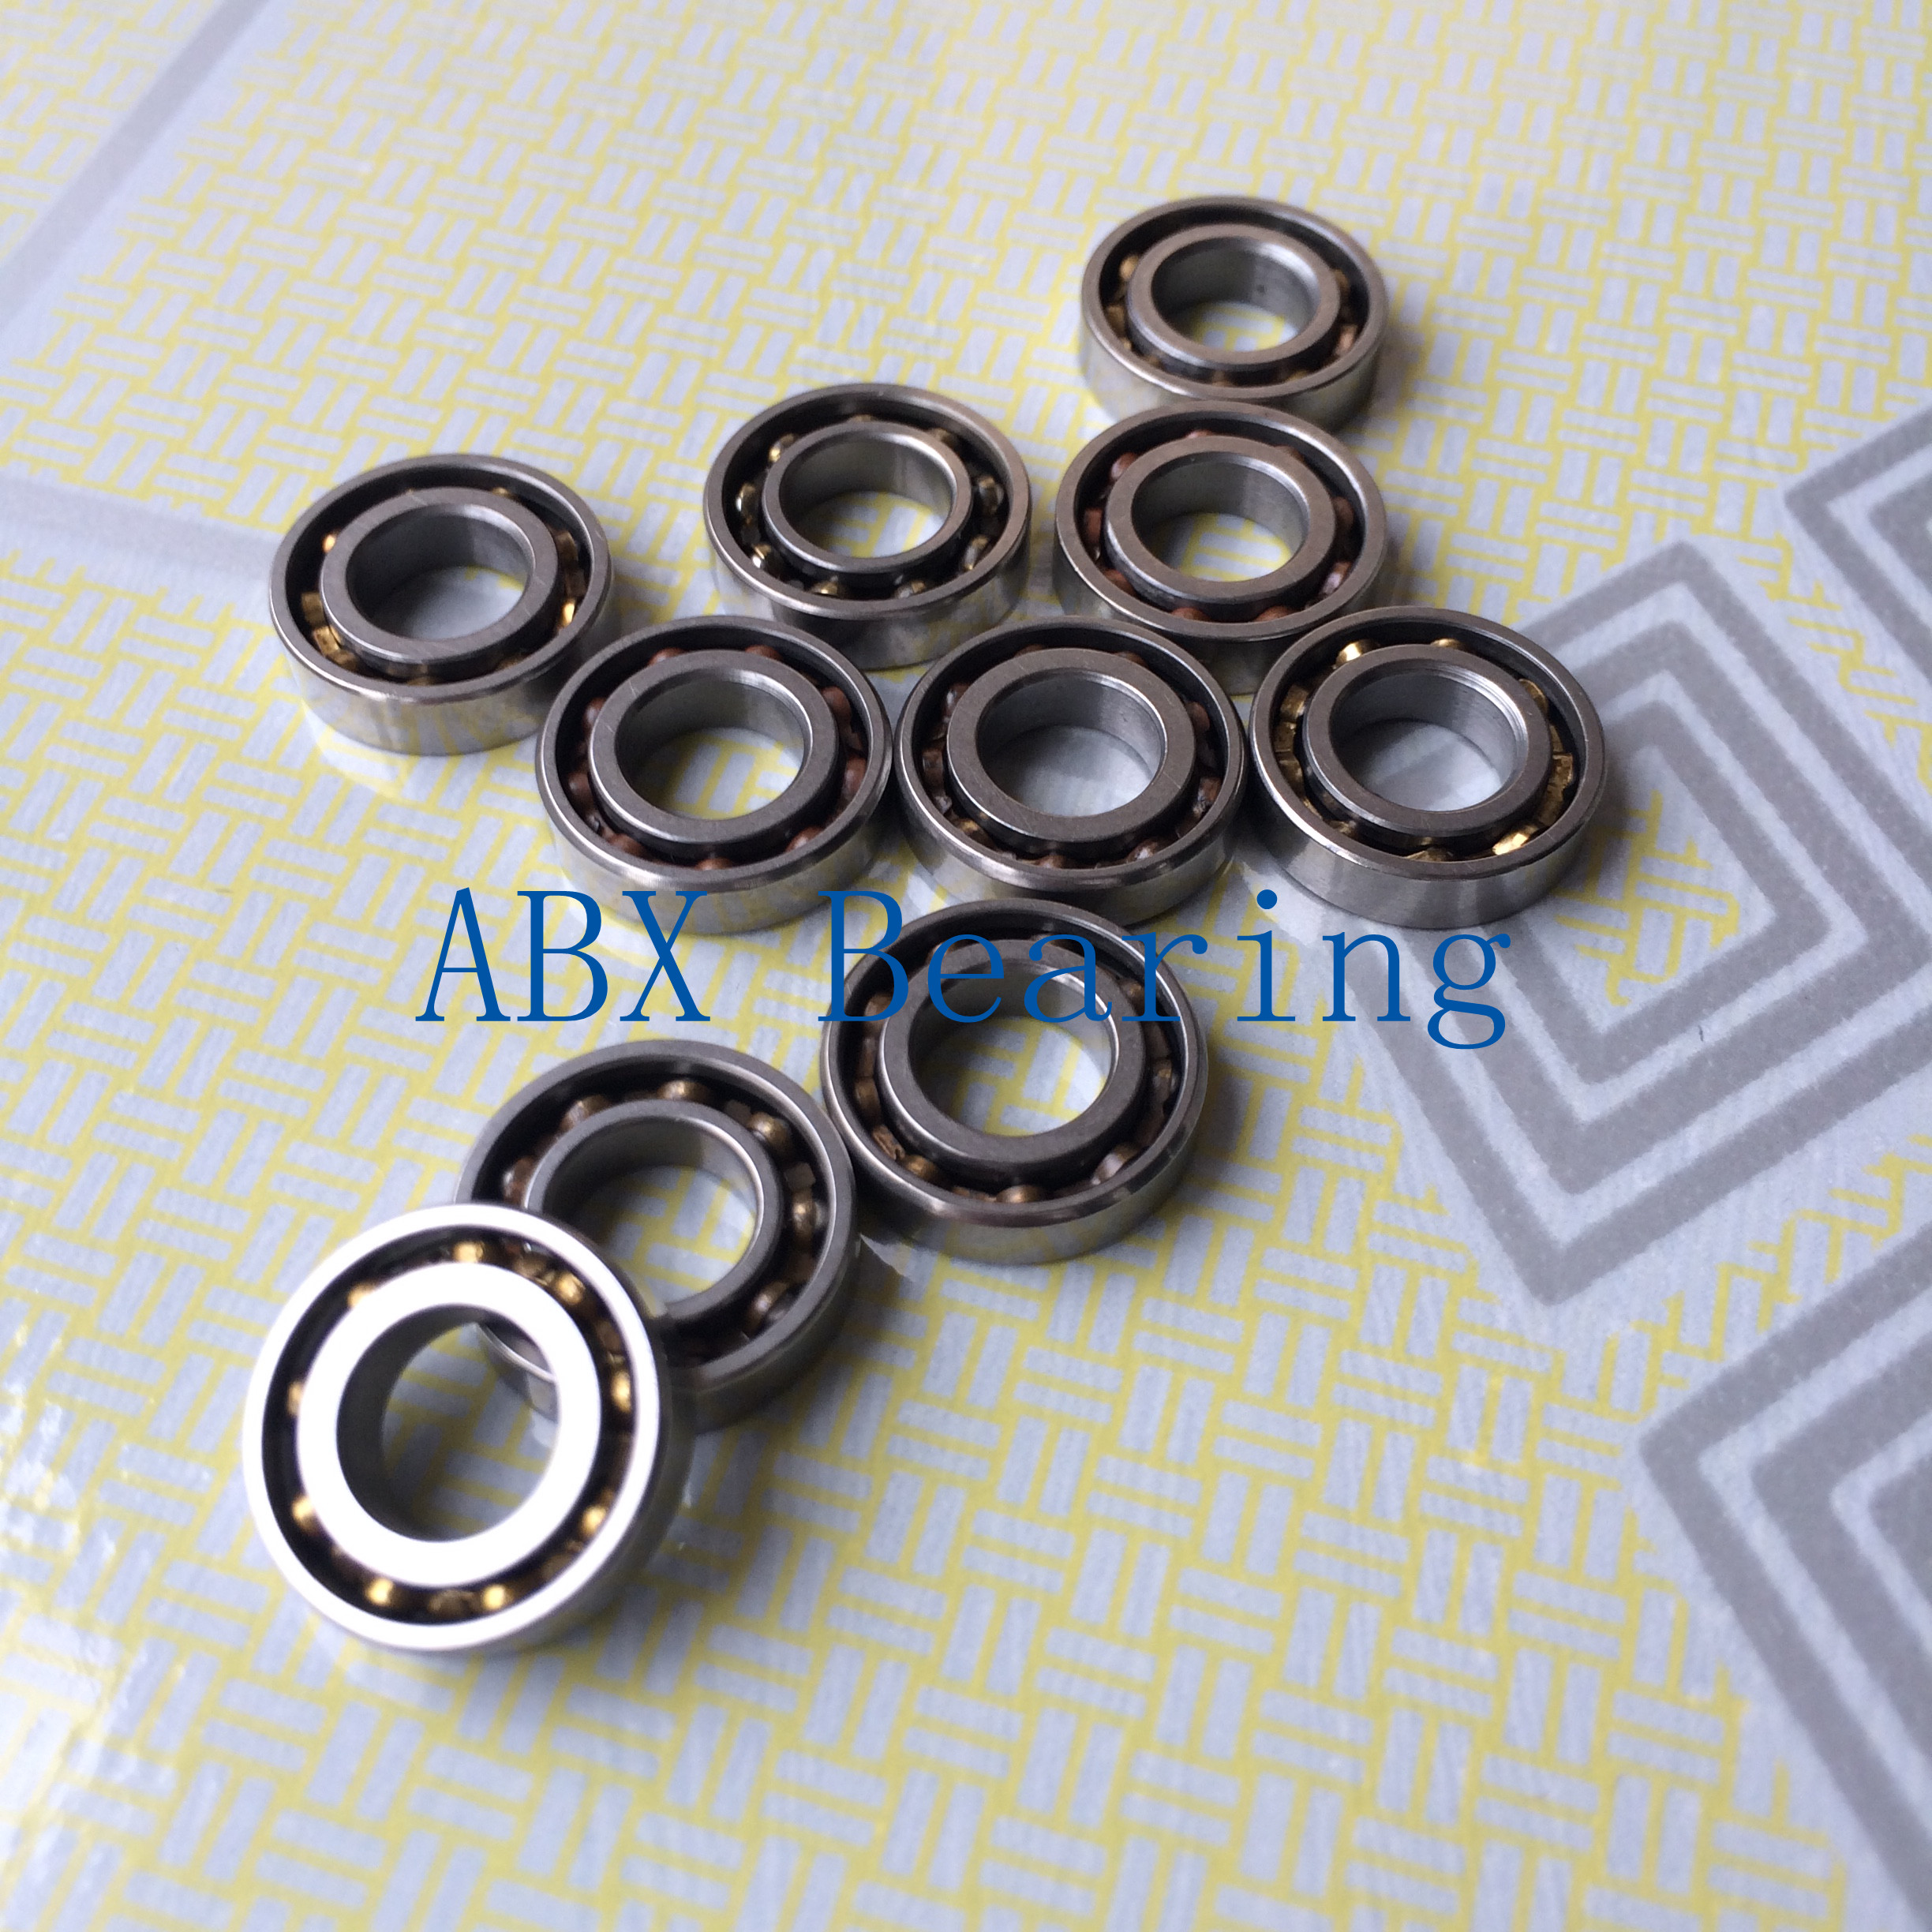 6001C3 NTN Radial Ball Bearings SELLING IN LOTS OF 10 Open 12mm Bore Dia